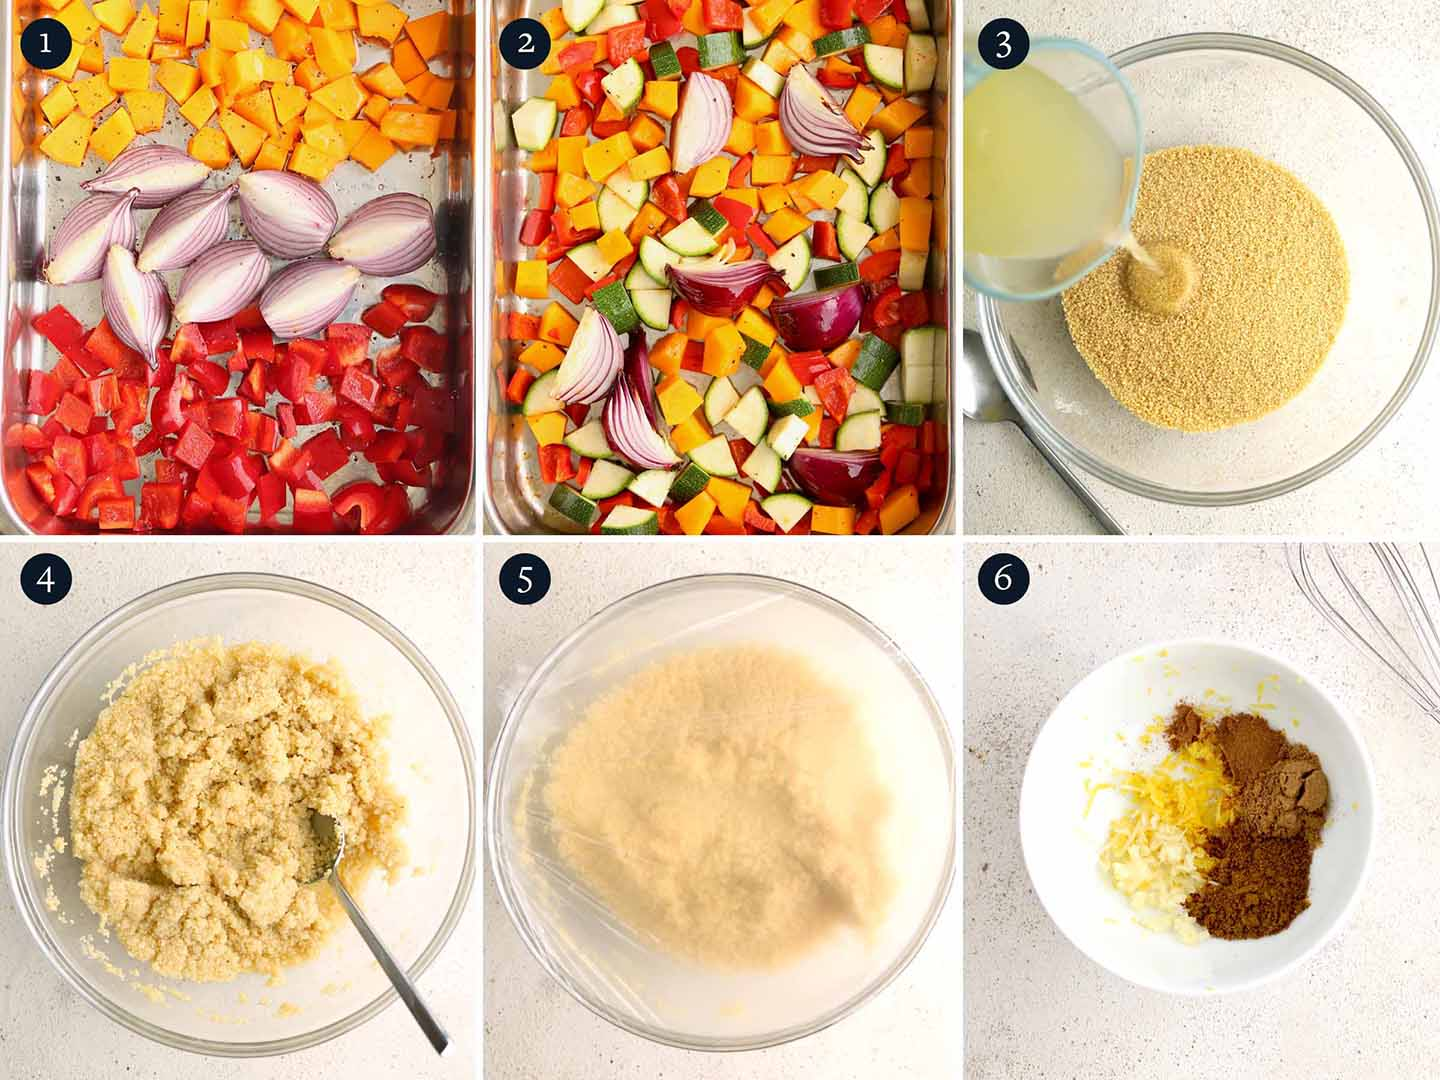 Moroccan Couscous recipe process steps 1-6